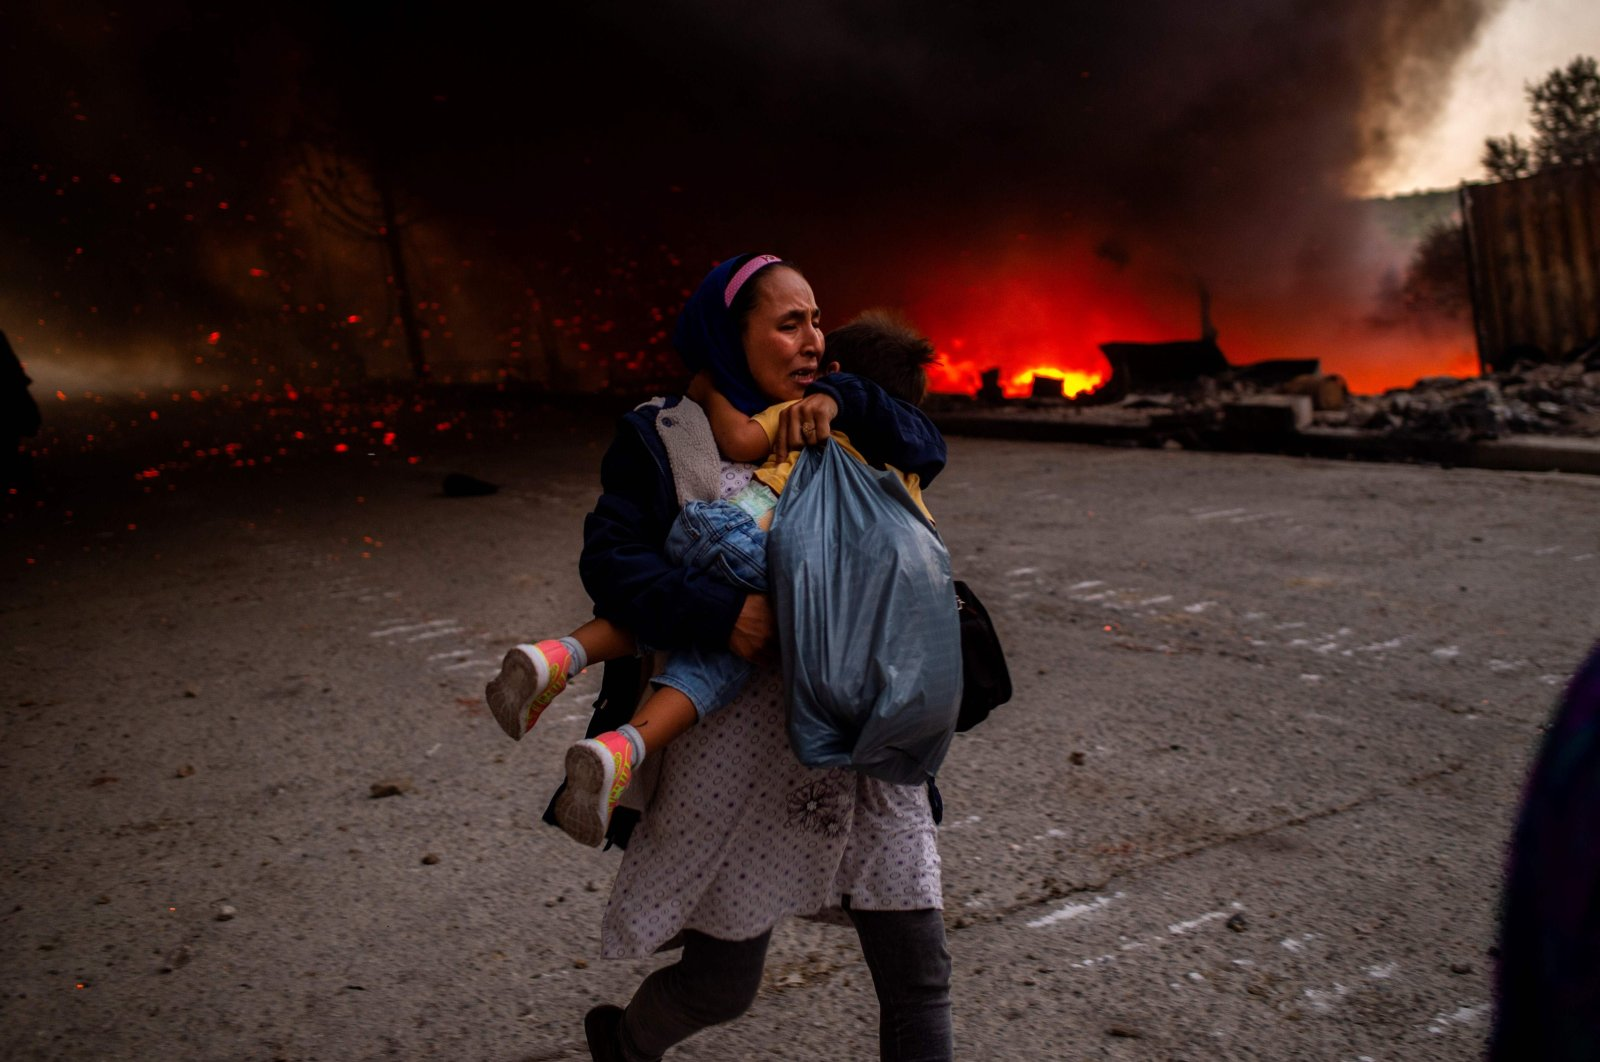 A migrant holds a girl as they flee a fire burning in the Moria camp on the island of Lesbos, Greece, Sept. 9, 2020. (AFP Photo)